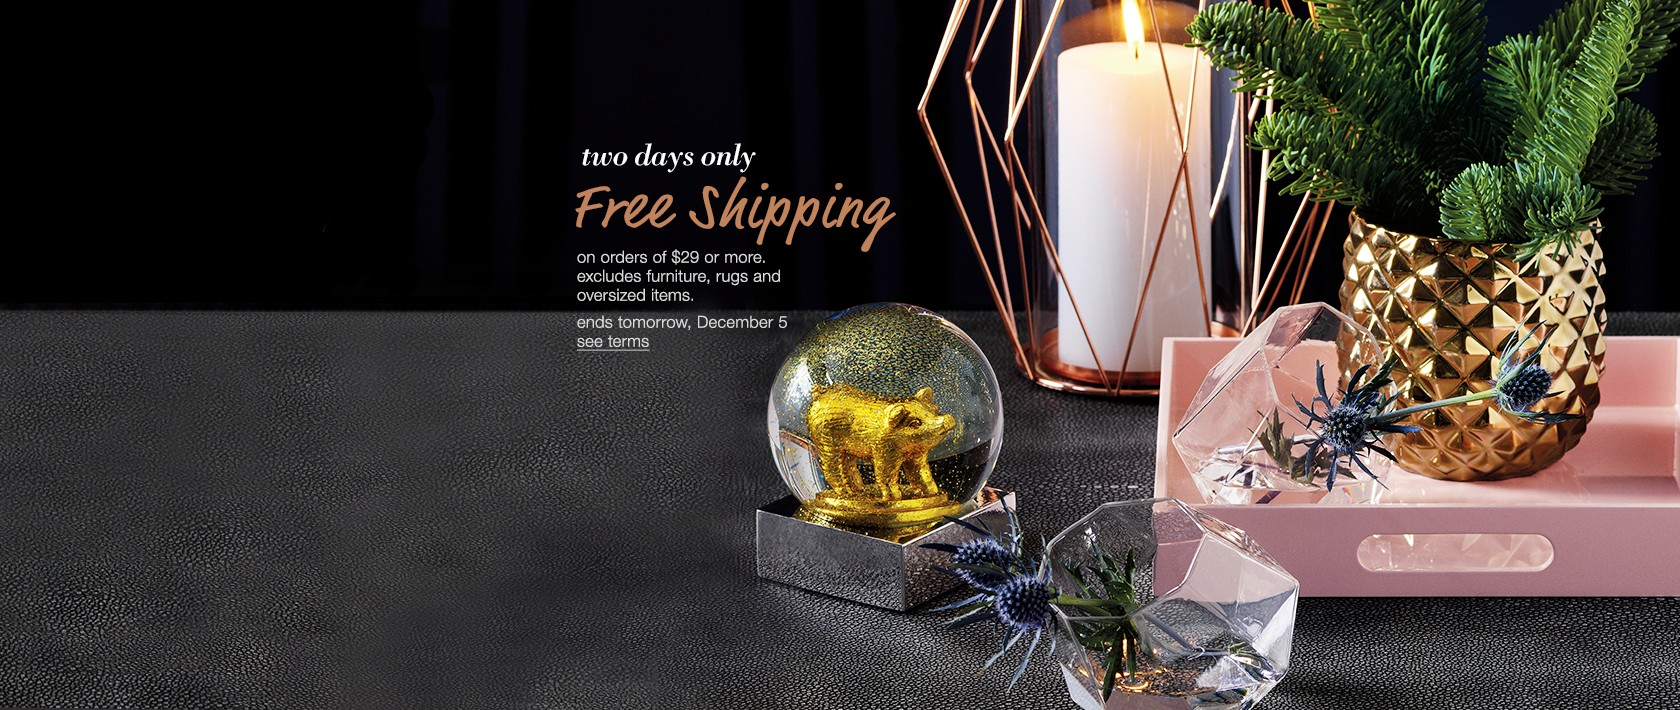 free shipping on orders of $29 or more.excludes furniture, rugs and oversized items